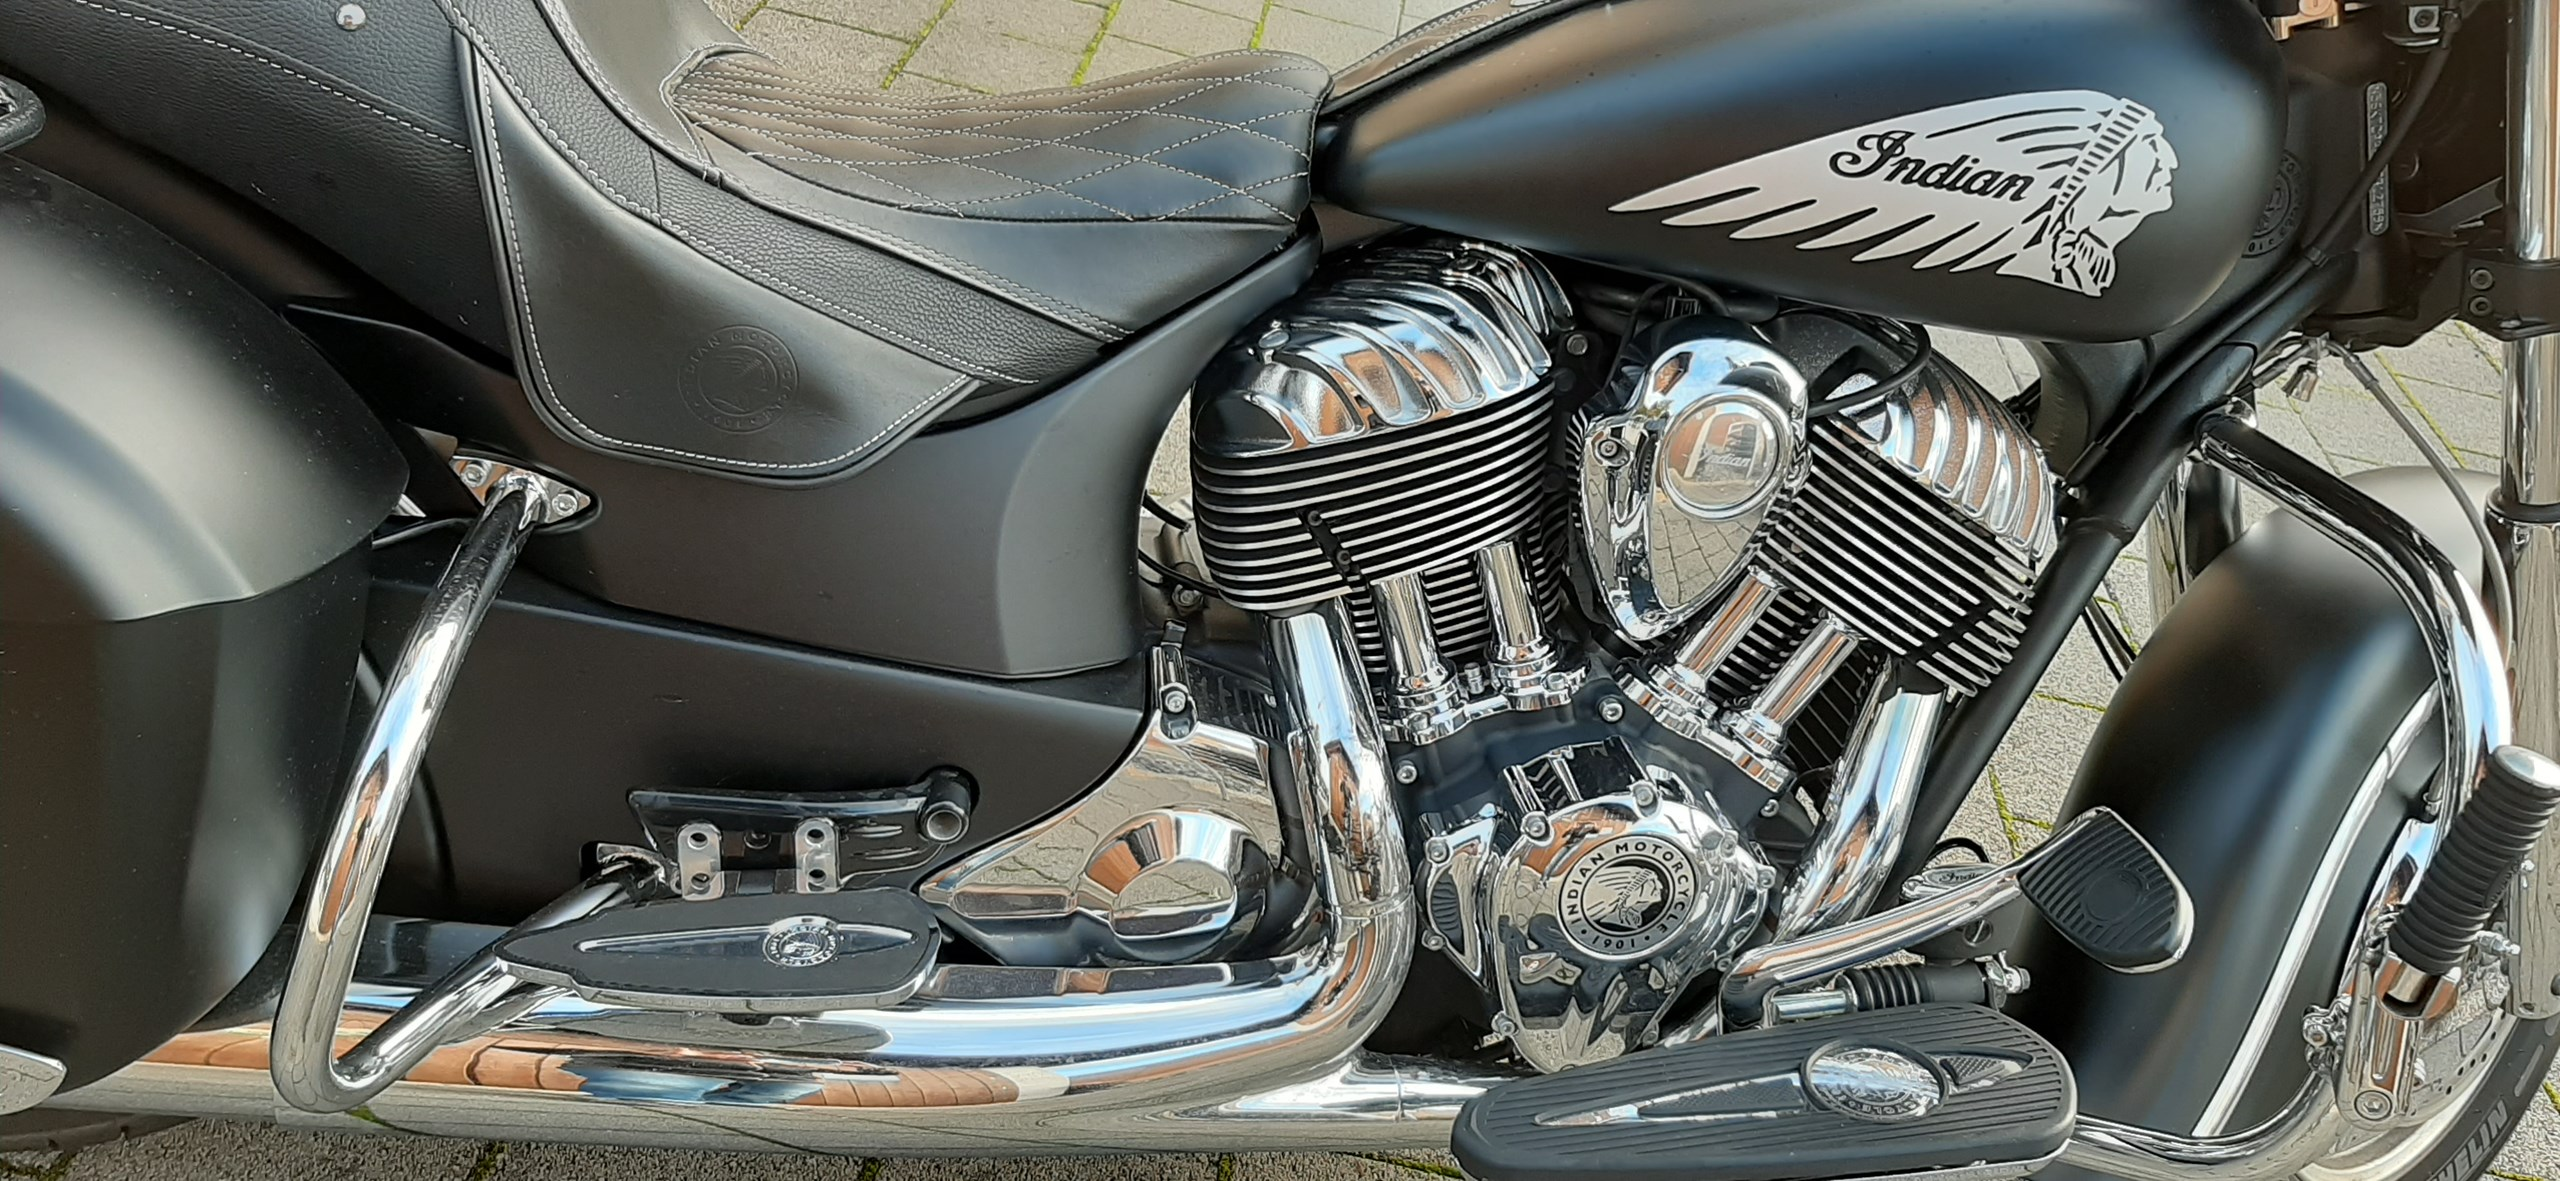 Indian Chieftain ABS